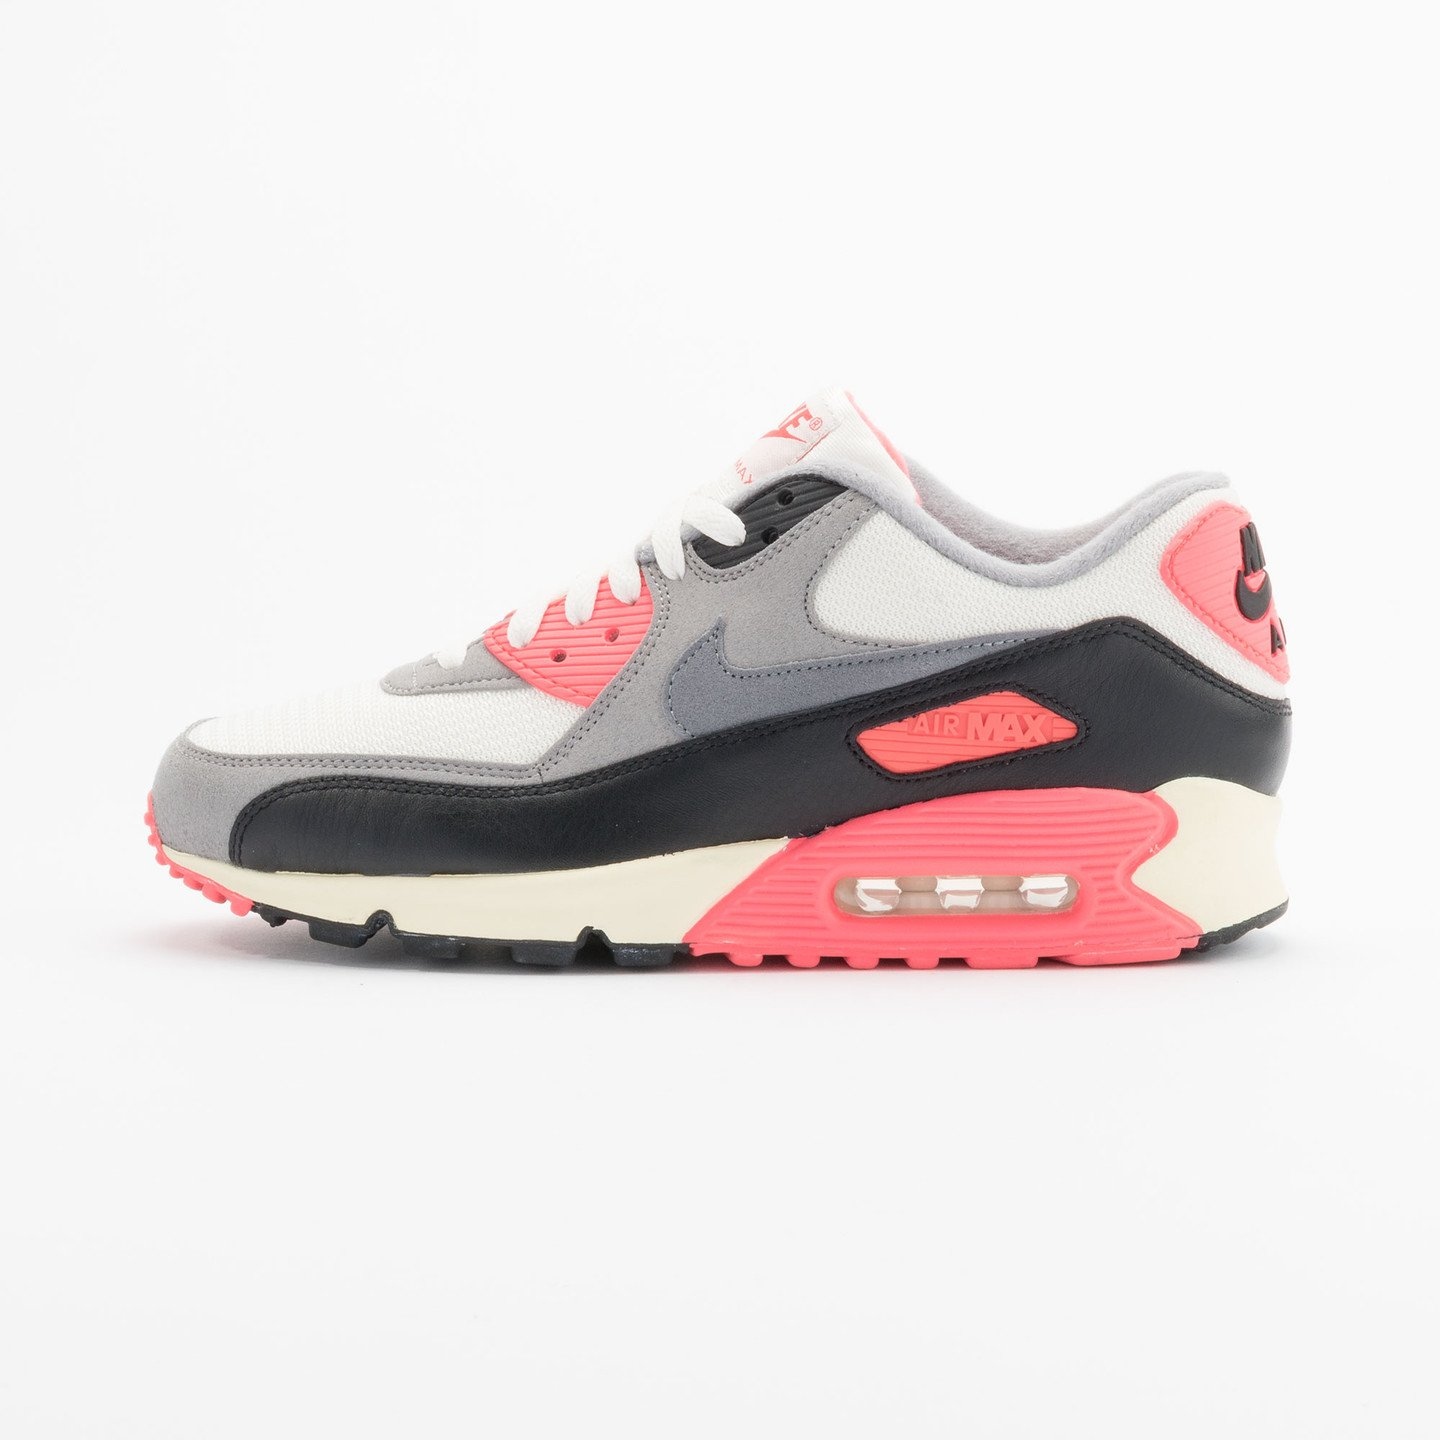 Nike Air Max 90 OG Vintage Infrared Sail/Cool Grey-Mdm Grey-Infrrd 543361-161-39